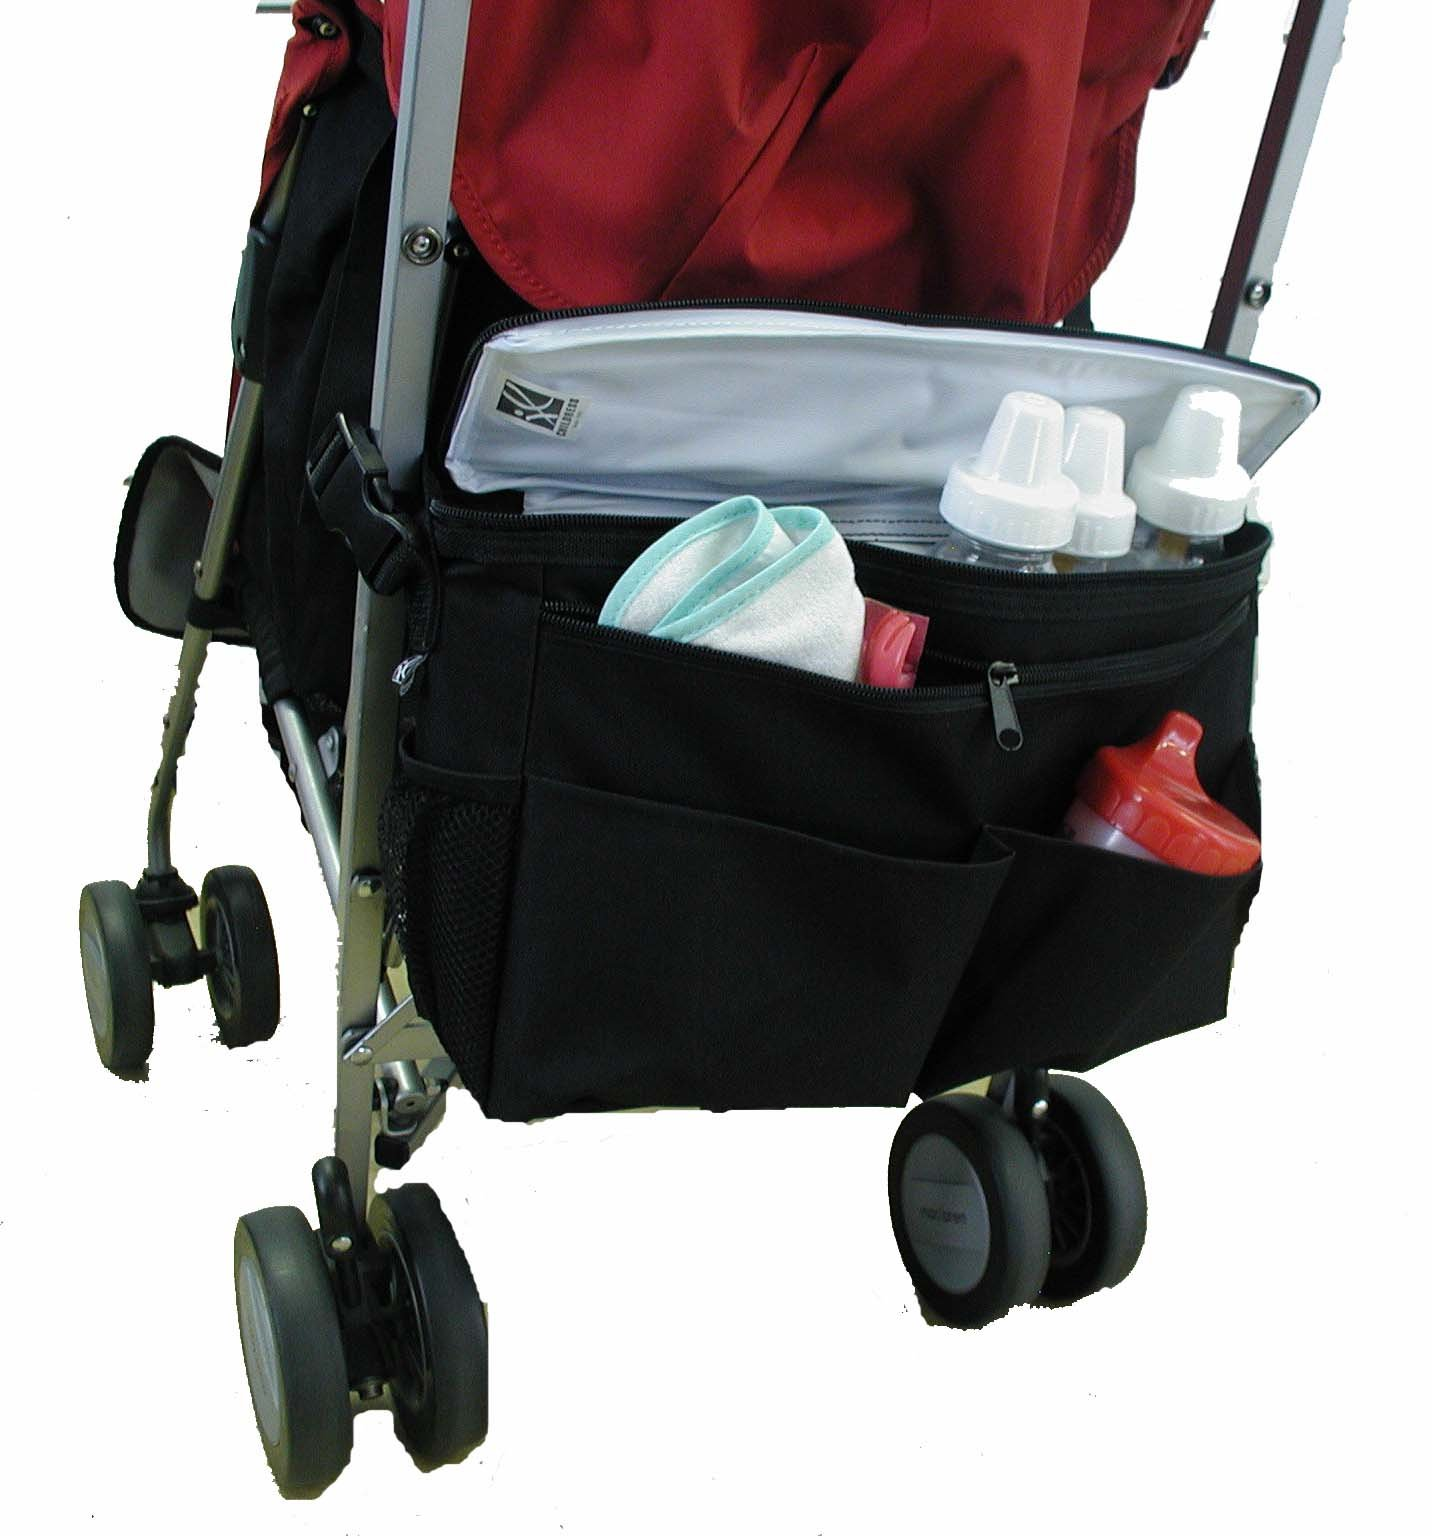 J.L. Childress Cool 'N Cargo, Universal Fit Stroller Cooler and Organizer, Insulated, Easily Attach to Stroller or Detach to use as Diaper Bag, Black by J.L. Childress